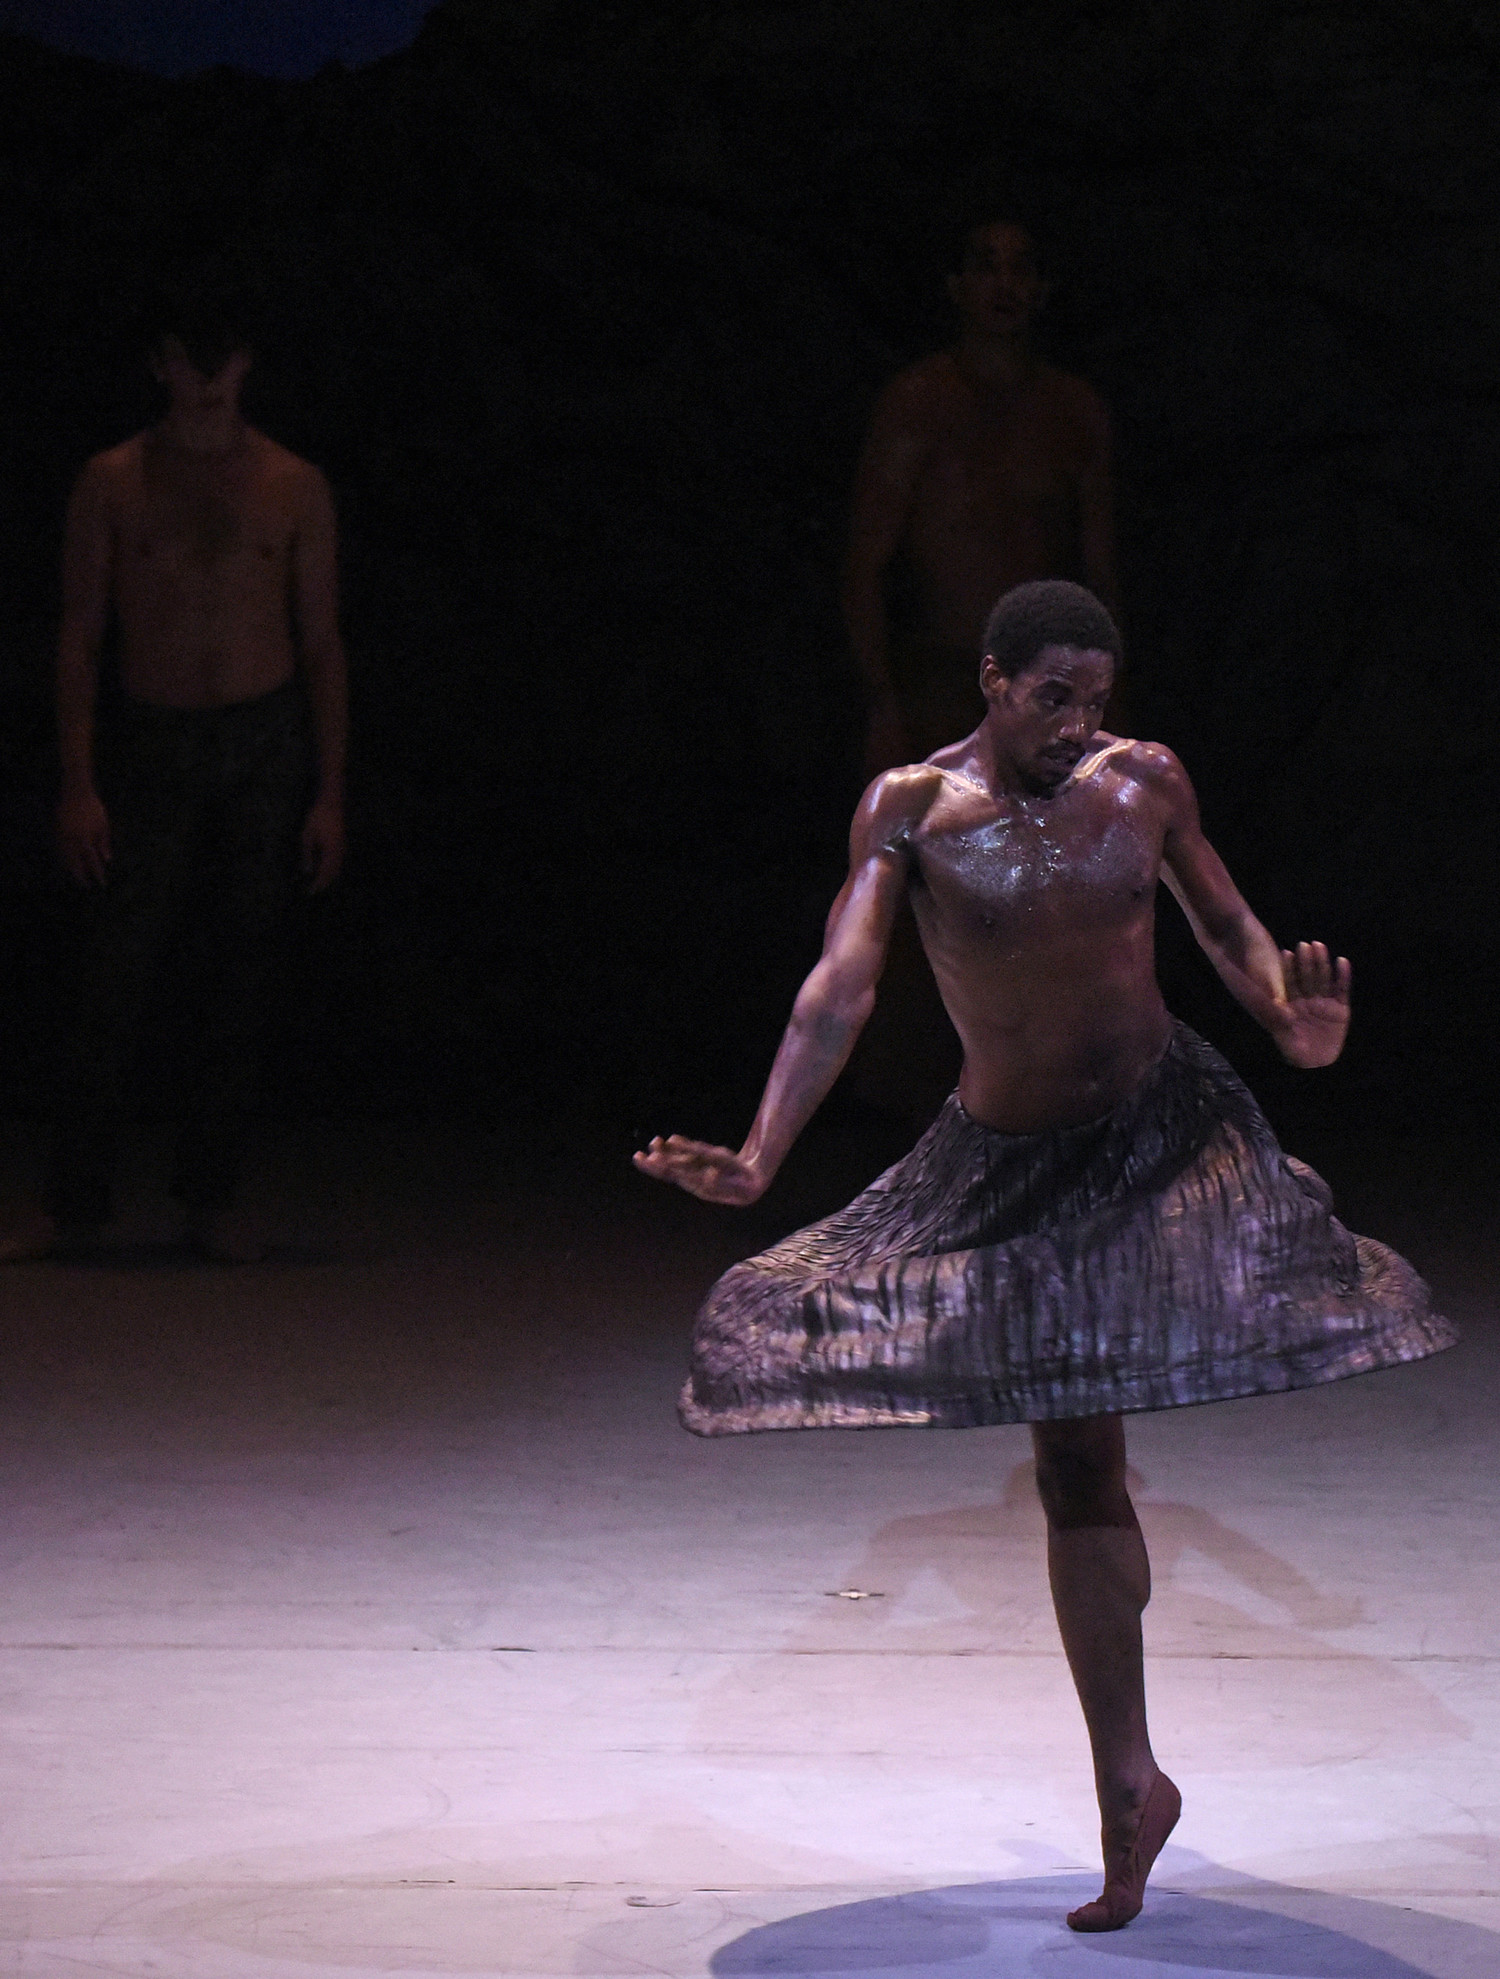 BWW Review: ALONZO KING'S LINES BALLET PRESENTS SUTRA ~ COMBINING EAST AND WEST RHYTHMS AND MOVES at The Wallis Annenberg Center For The Performing Arts